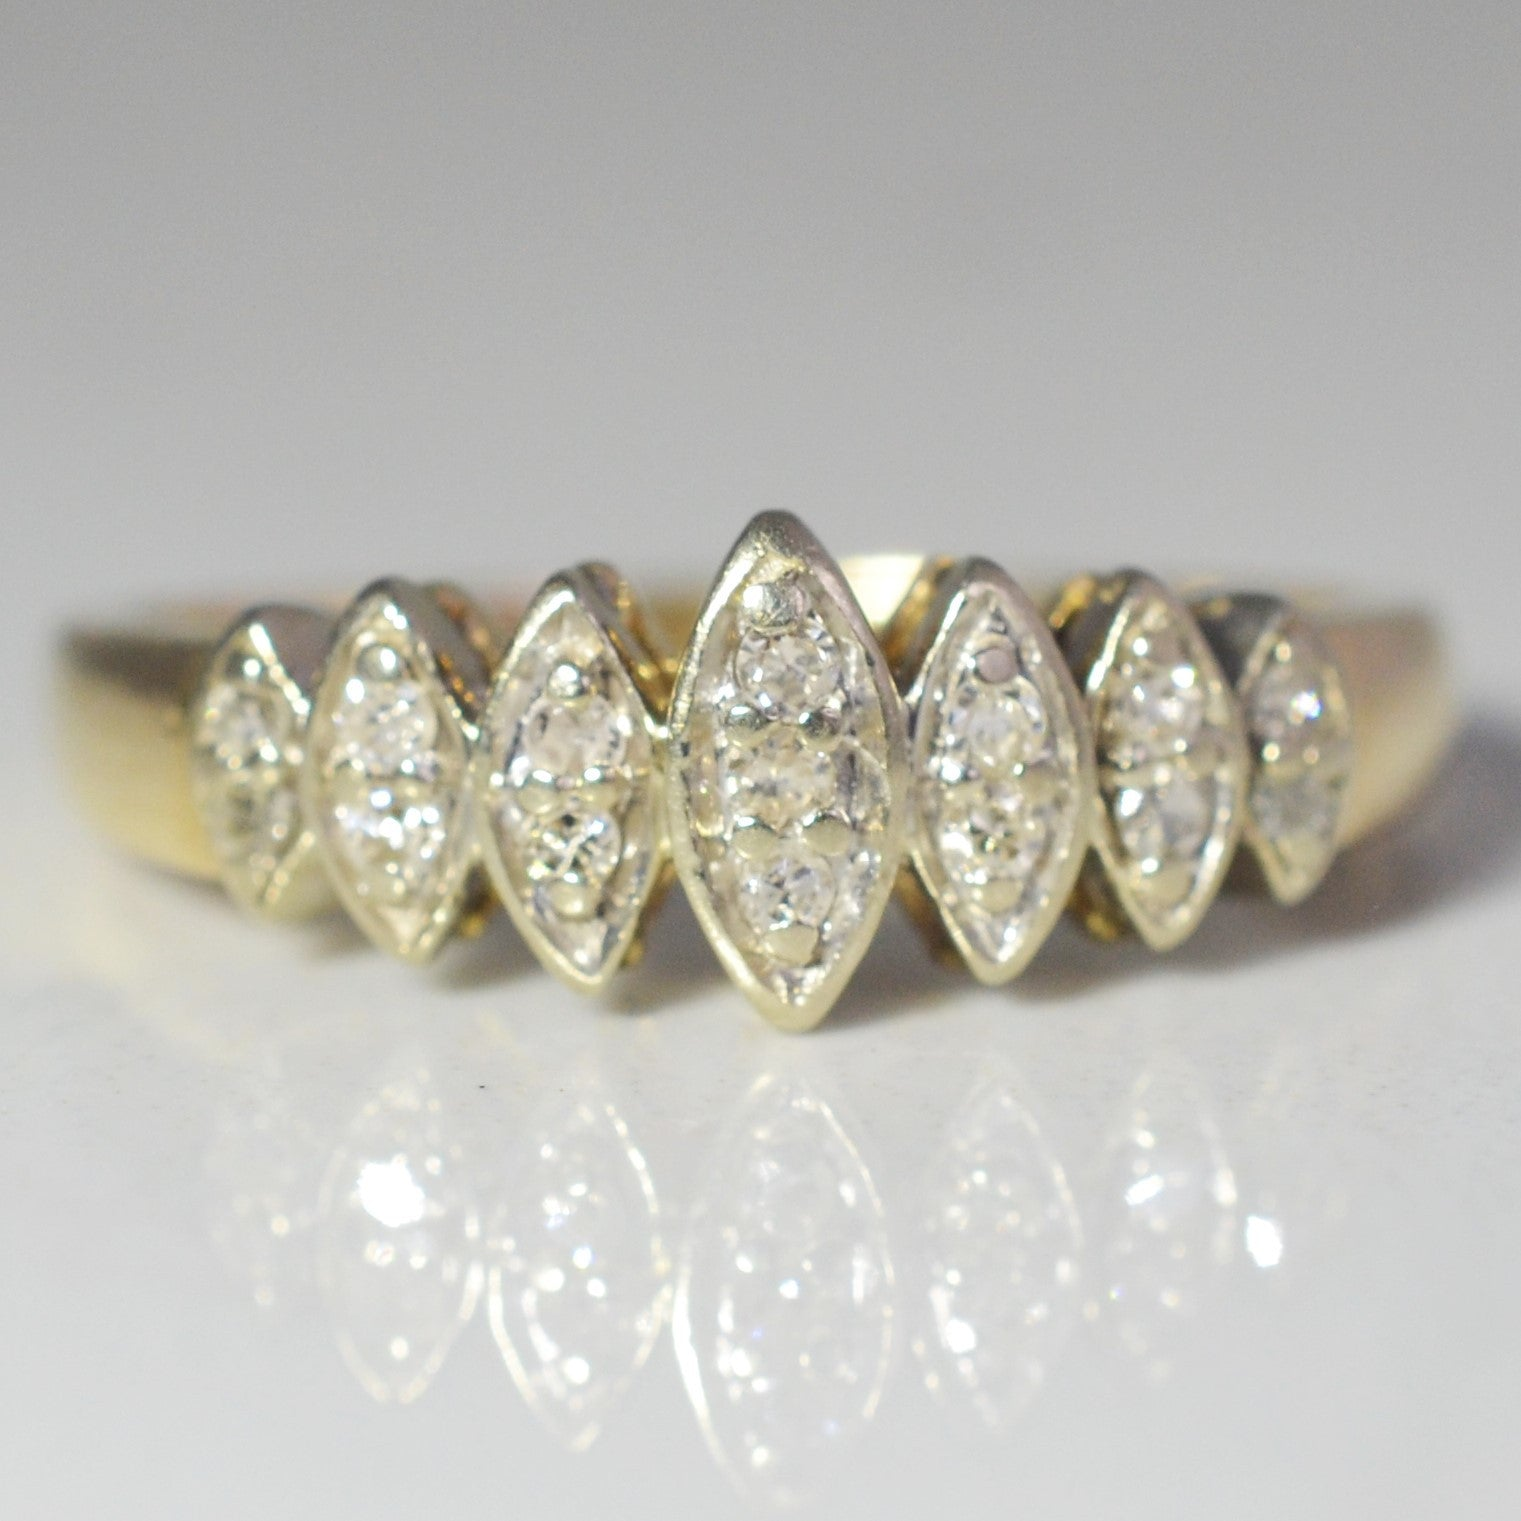 Marquise Illusion Diamond Ring | 0.15 ctw, SZ 6.25 |